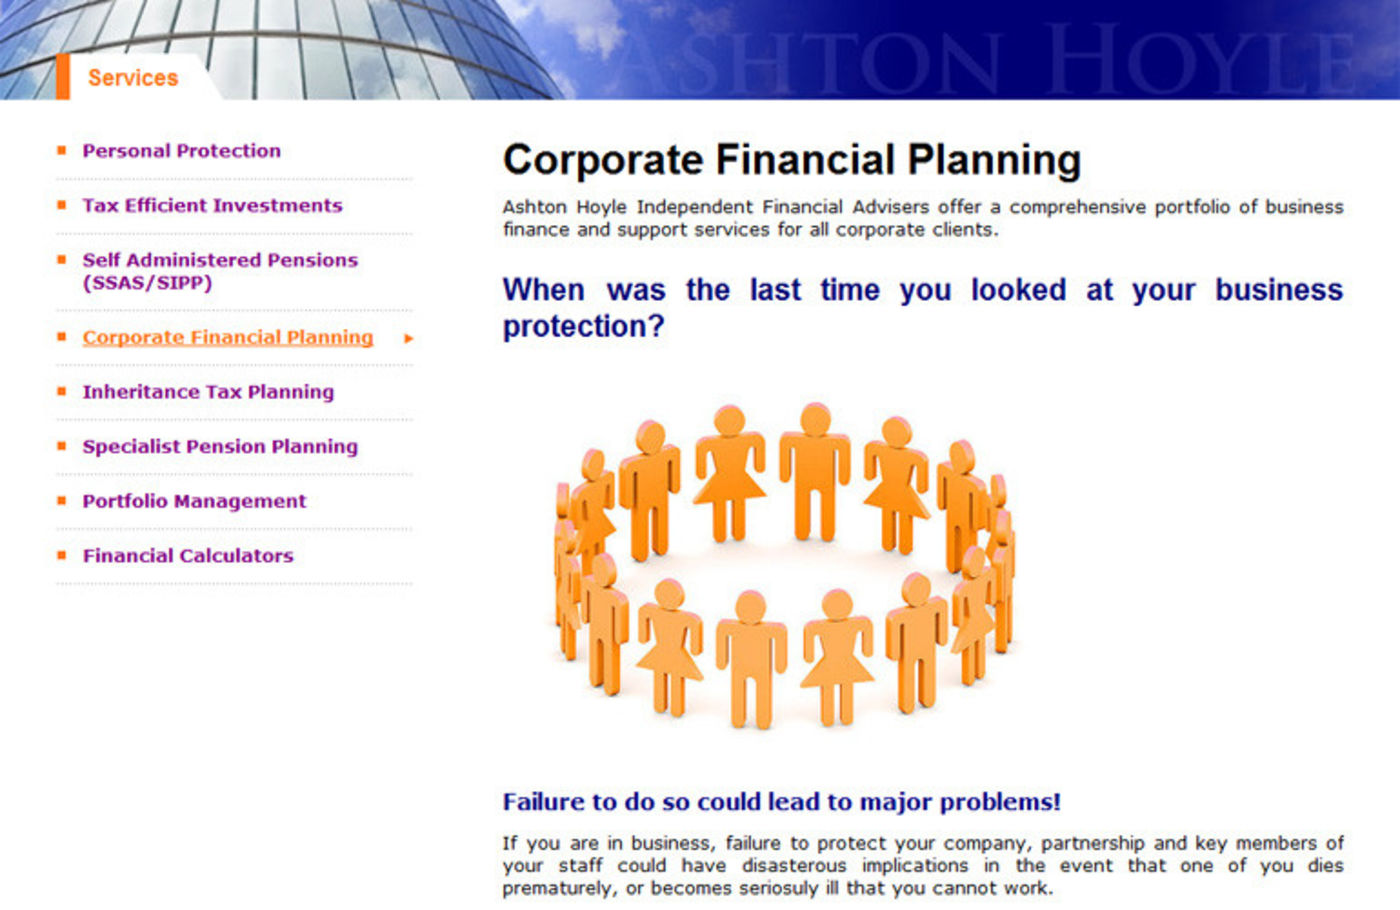 Ashton Hoyle Independent Financial Advisers Corporate financial planning